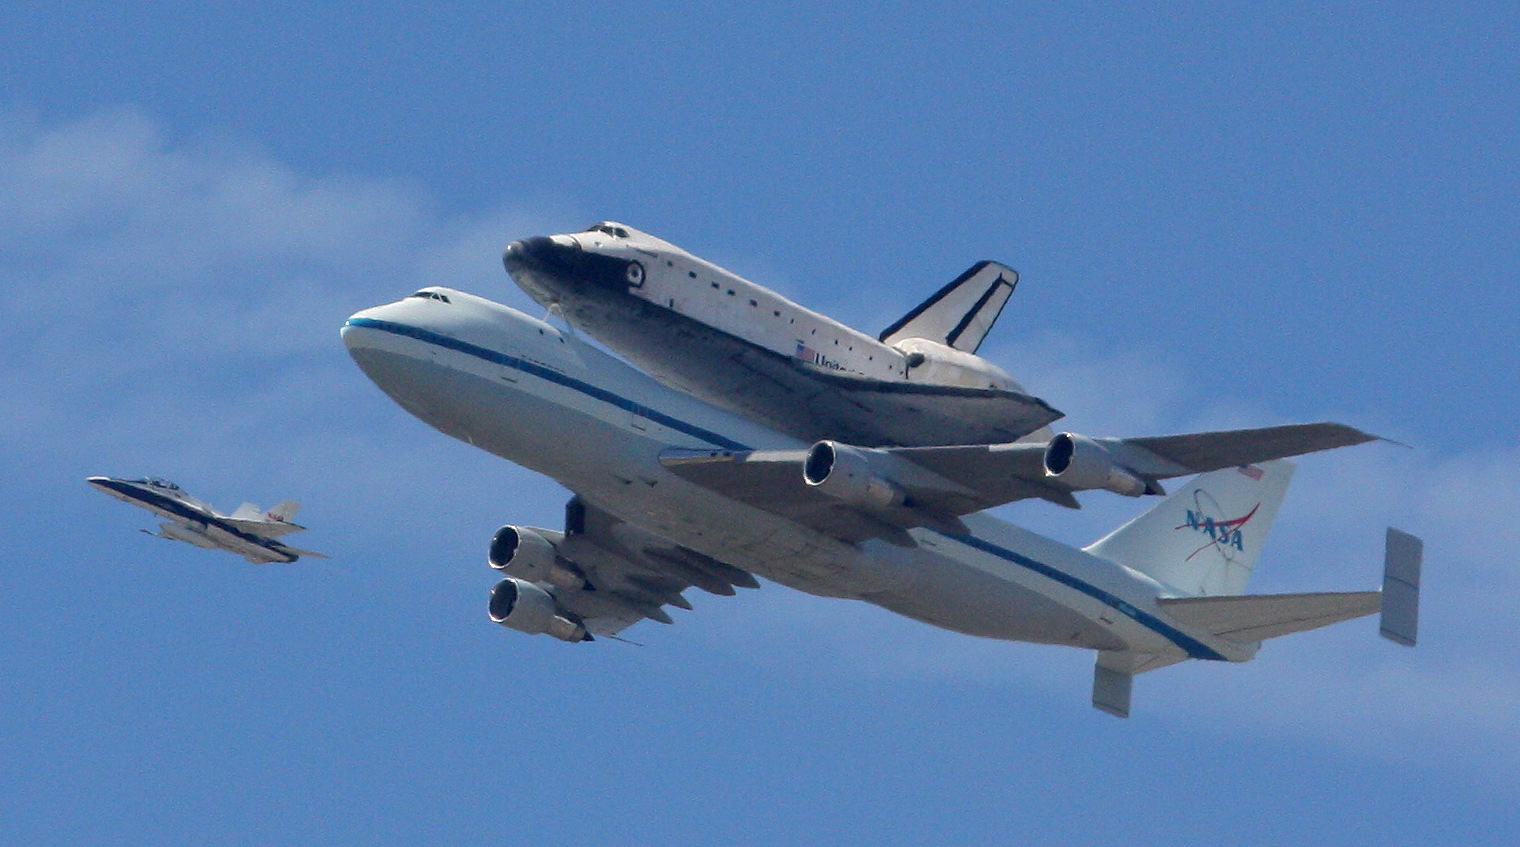 Space Shuttle Endeavor cruises over Norwalk and Cerritos on Friday on its final flight.